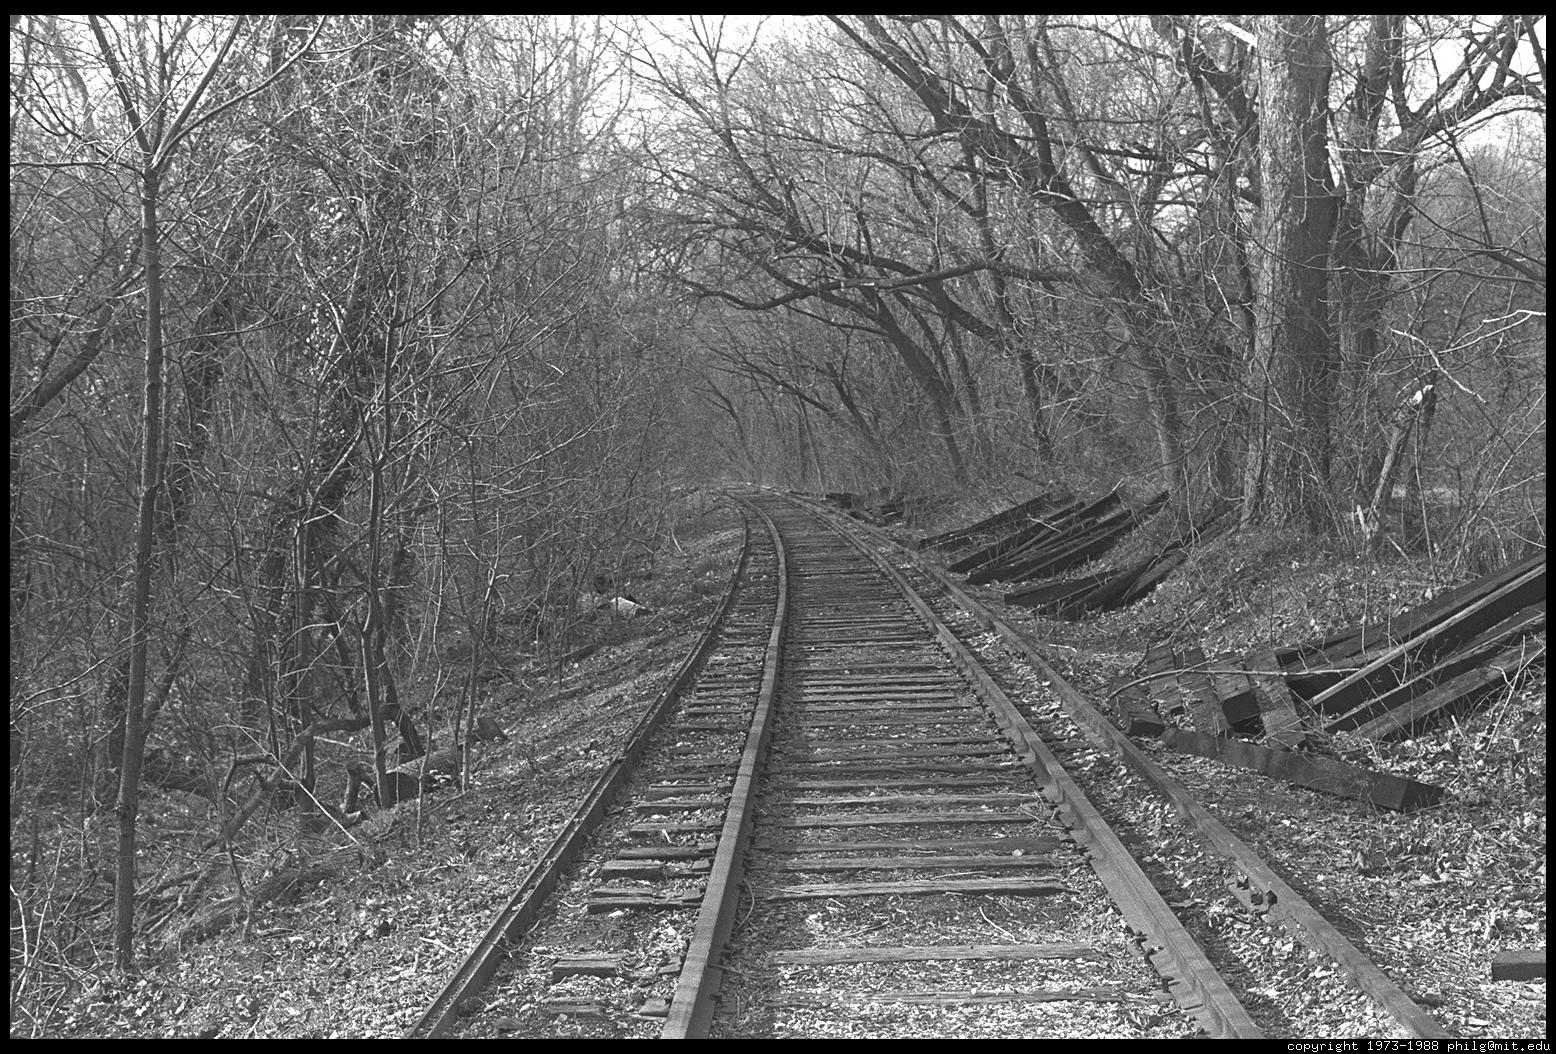 Spookiest Stuff: The Railroad